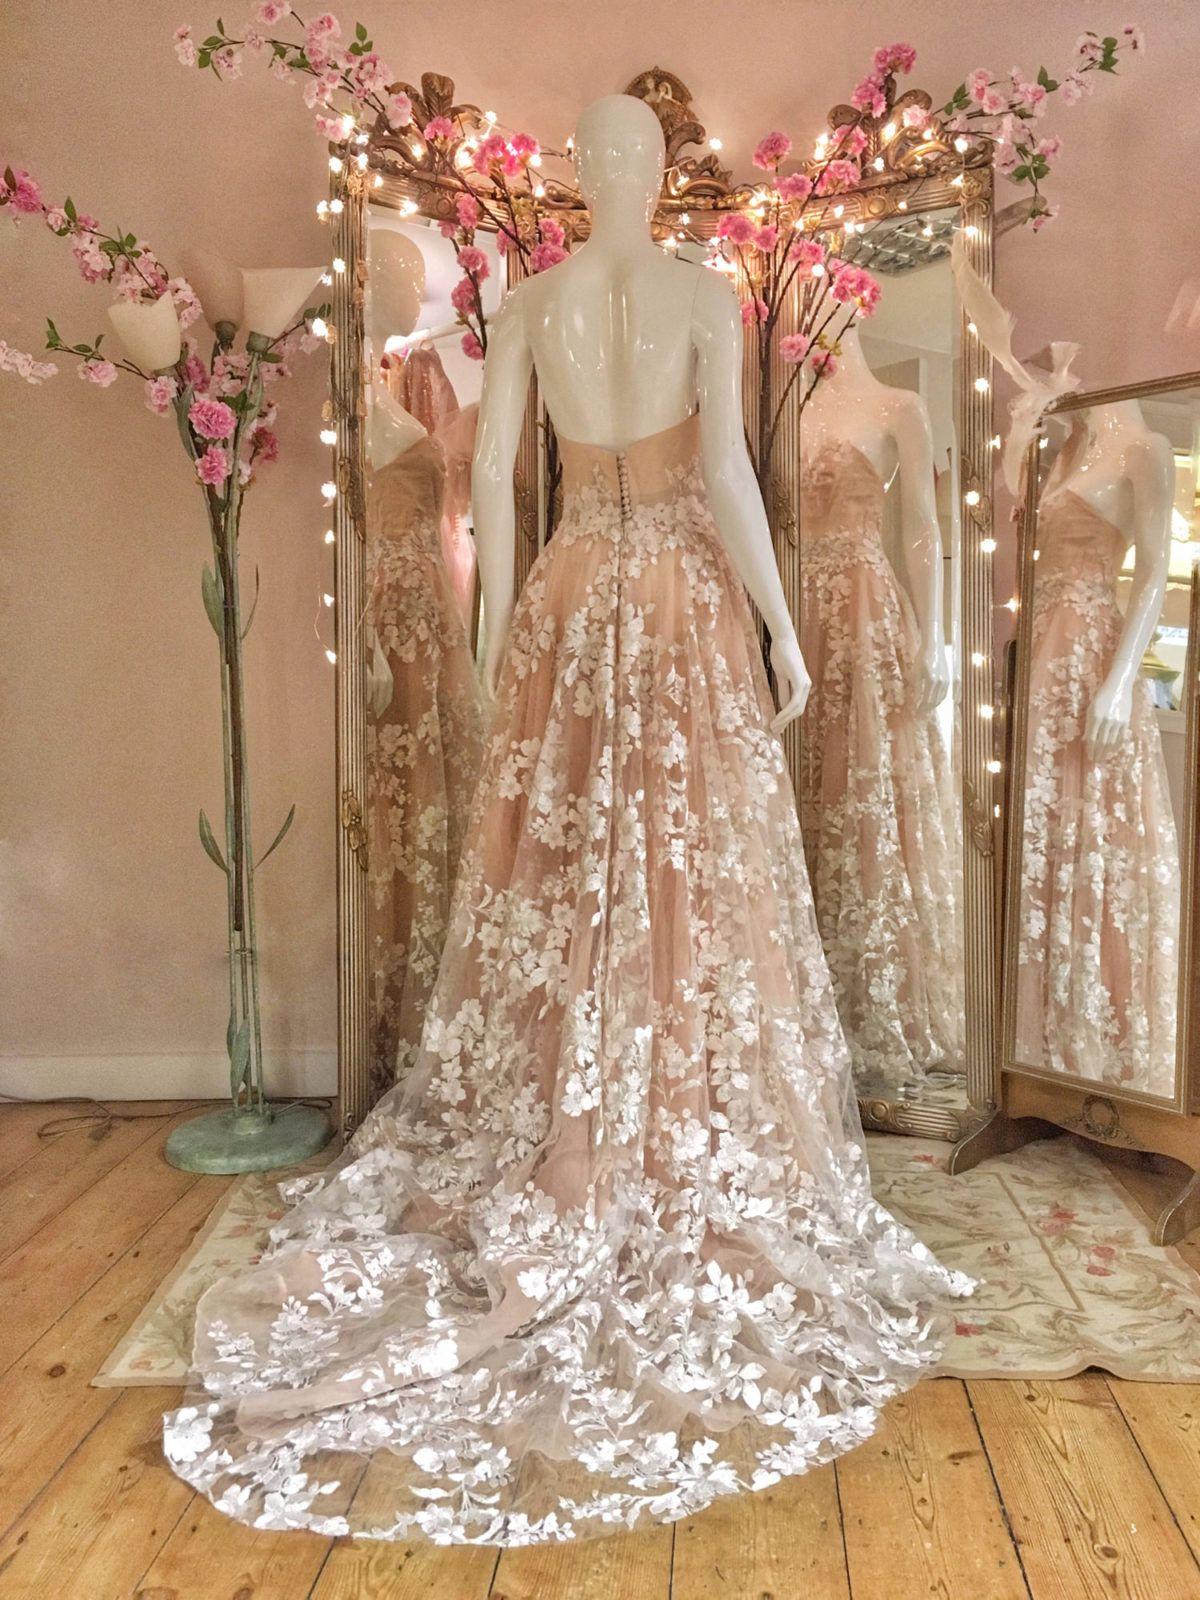 Realistic New Short Wedding Dress Reception White Appliques Beading Embroidery Flower Sheer Neck Wedding Prom Party Gown Robe De Marriage Evident Effect Weddings & Events